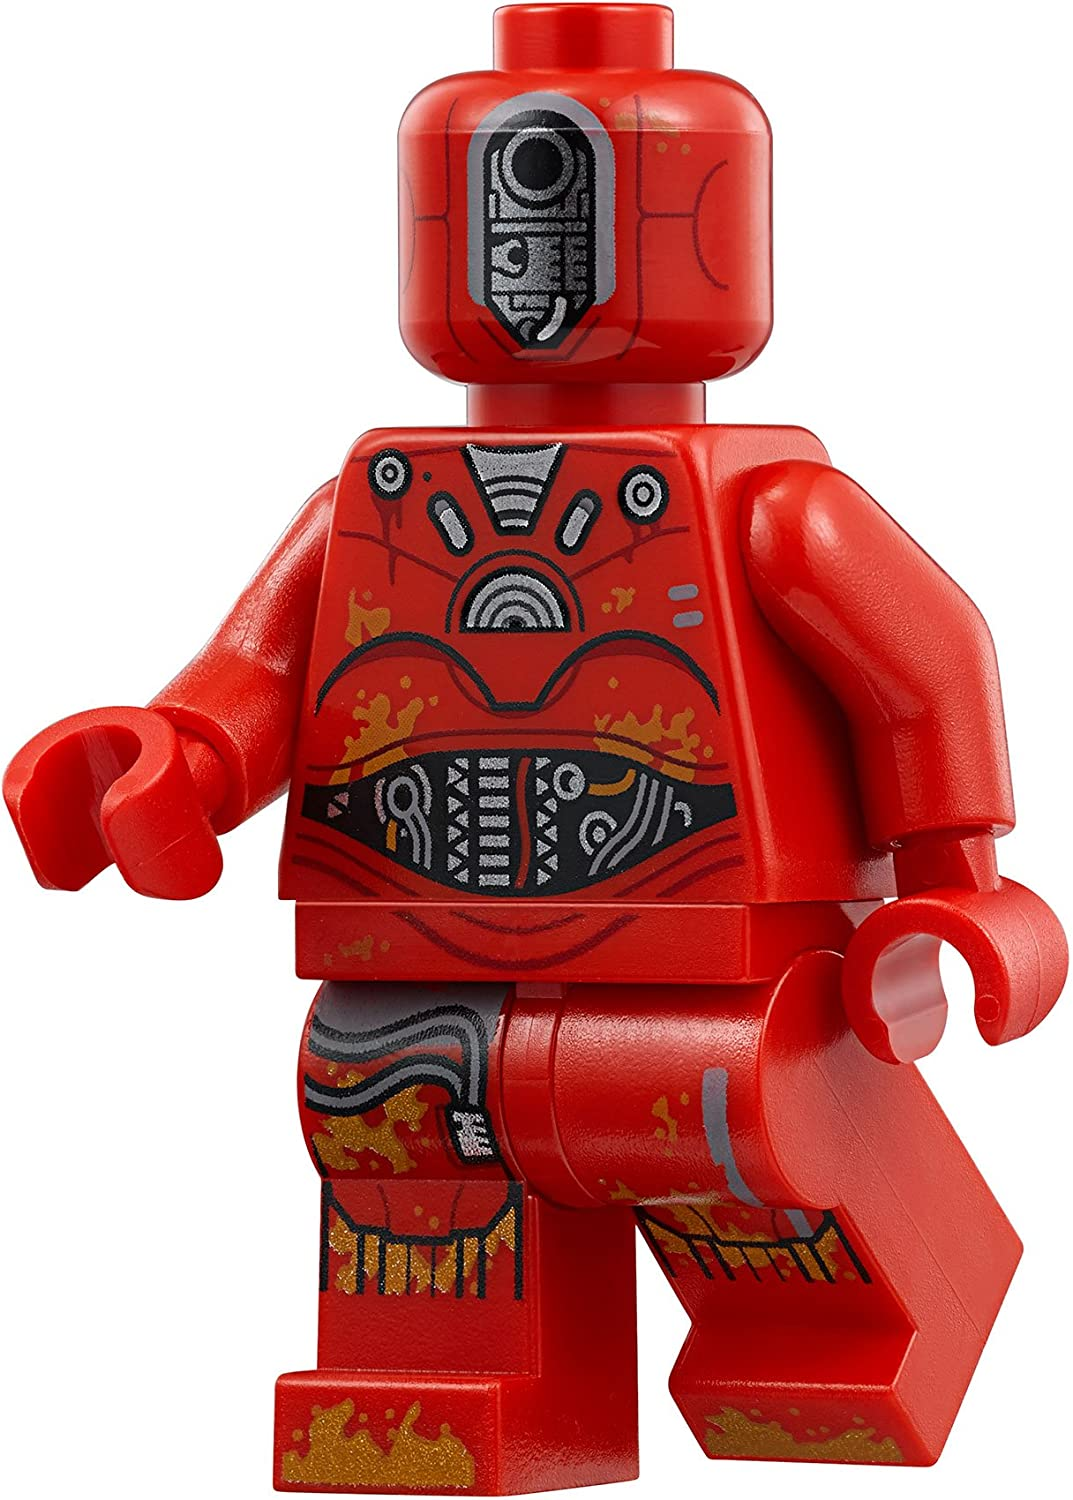 LEGO Solo: A Star Wars Story Minifigure - Kessel Operations Droid S1D6-SA-5 (75212)